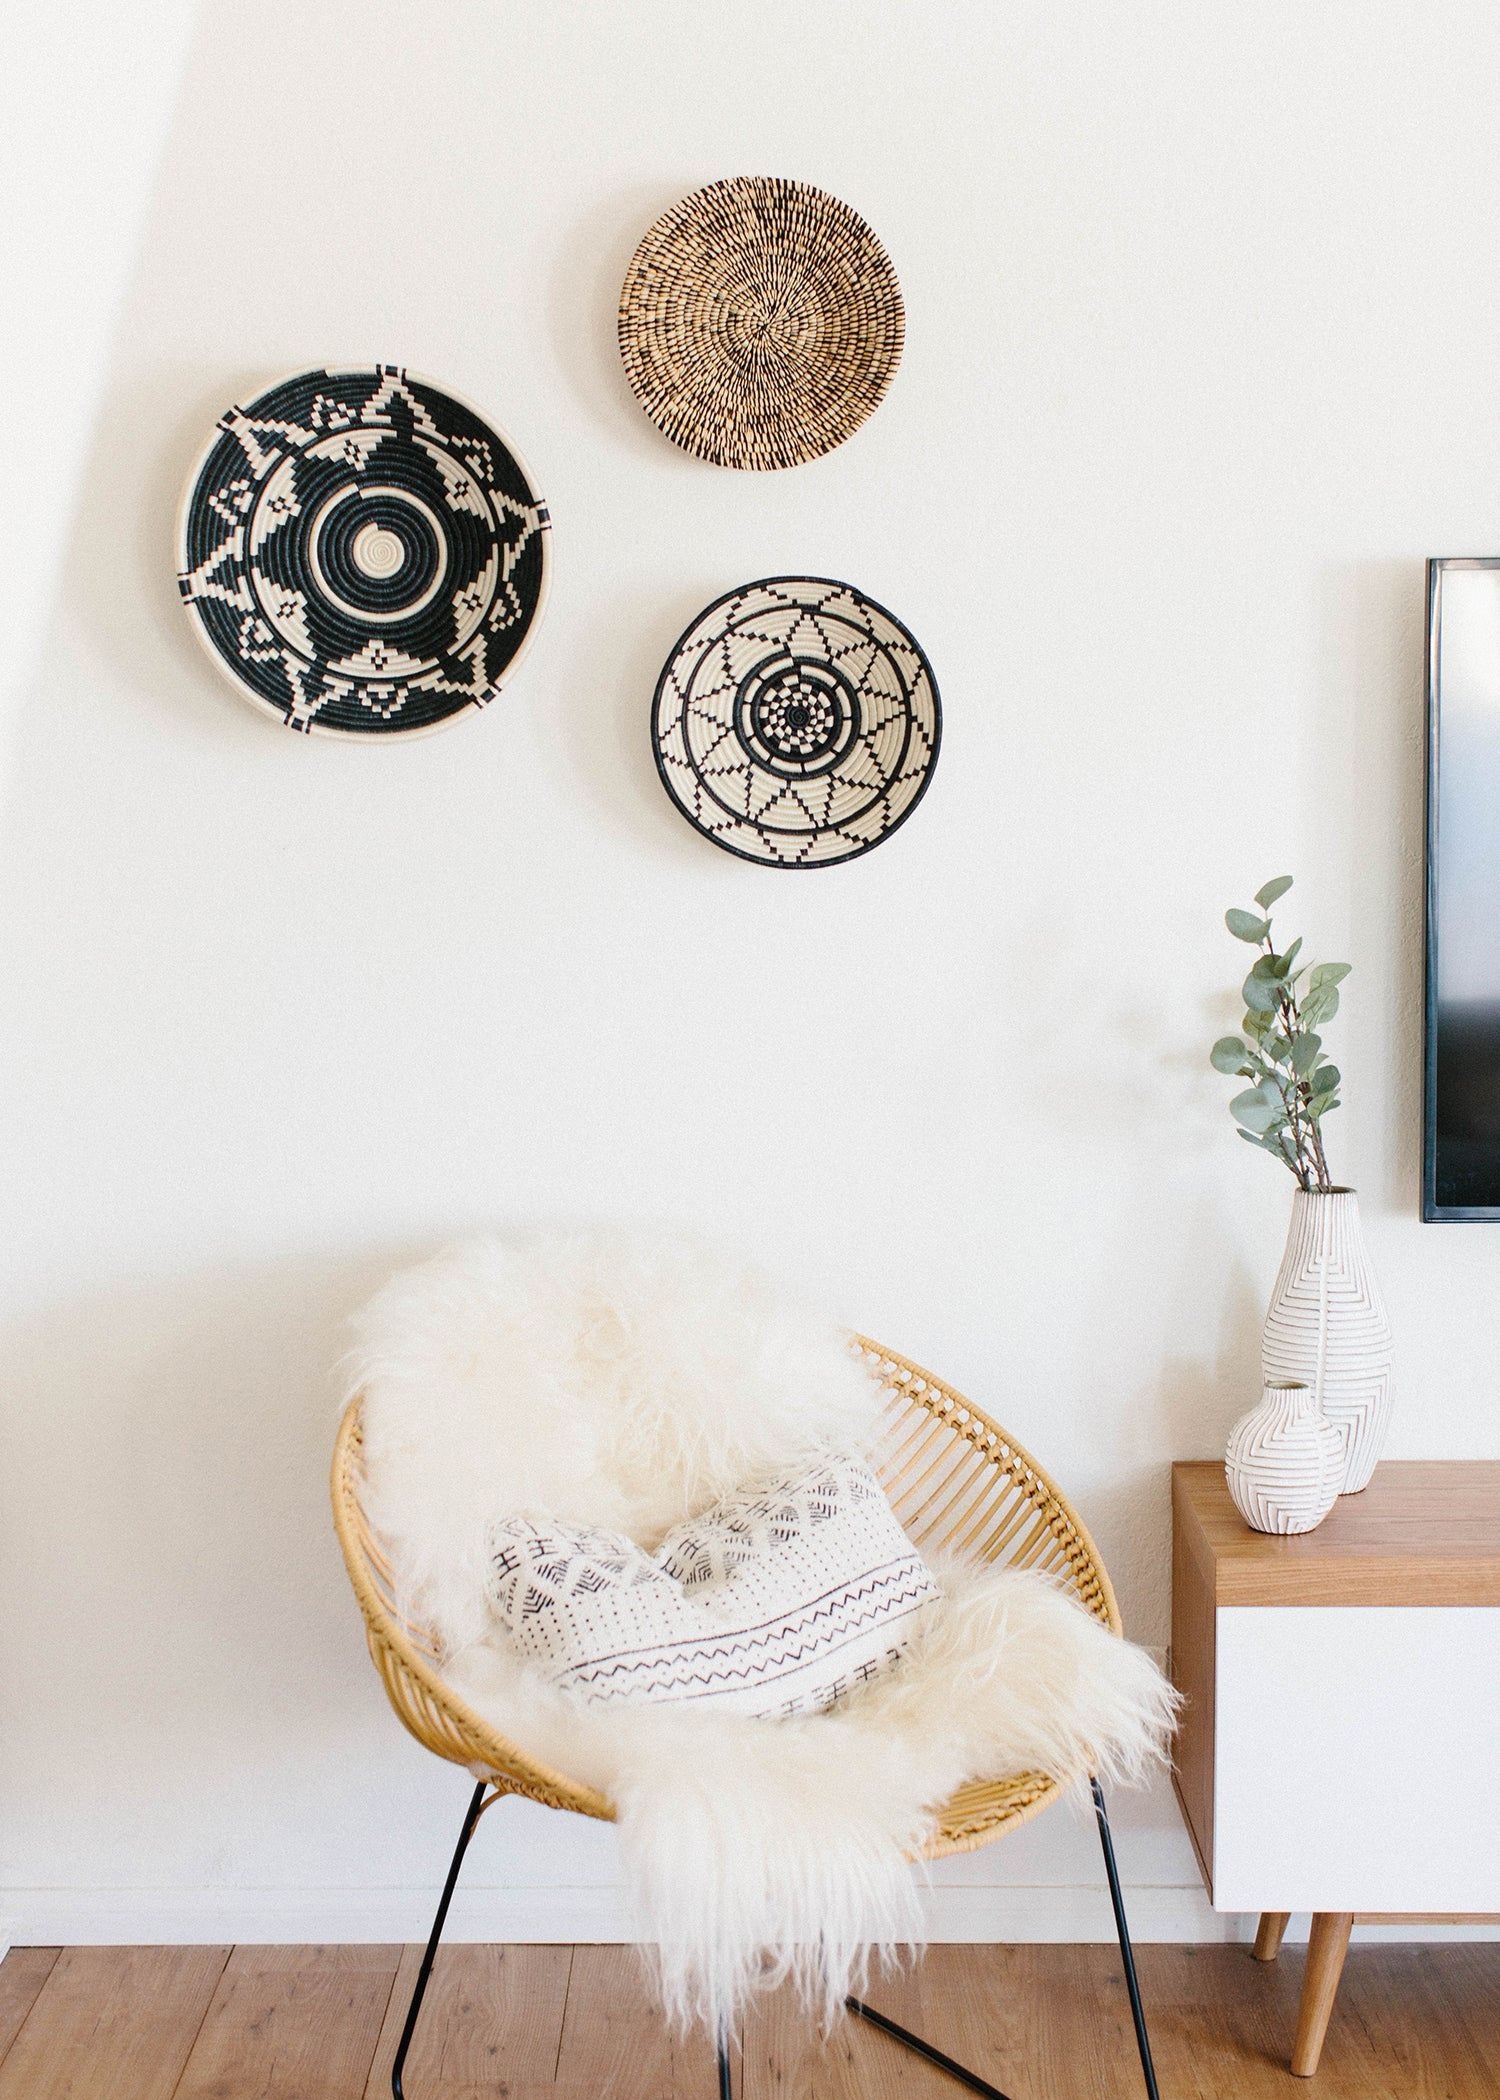 Heathered Black + White Raffia Large Basket - KAZI - Artisan made high quality home decor and wall art